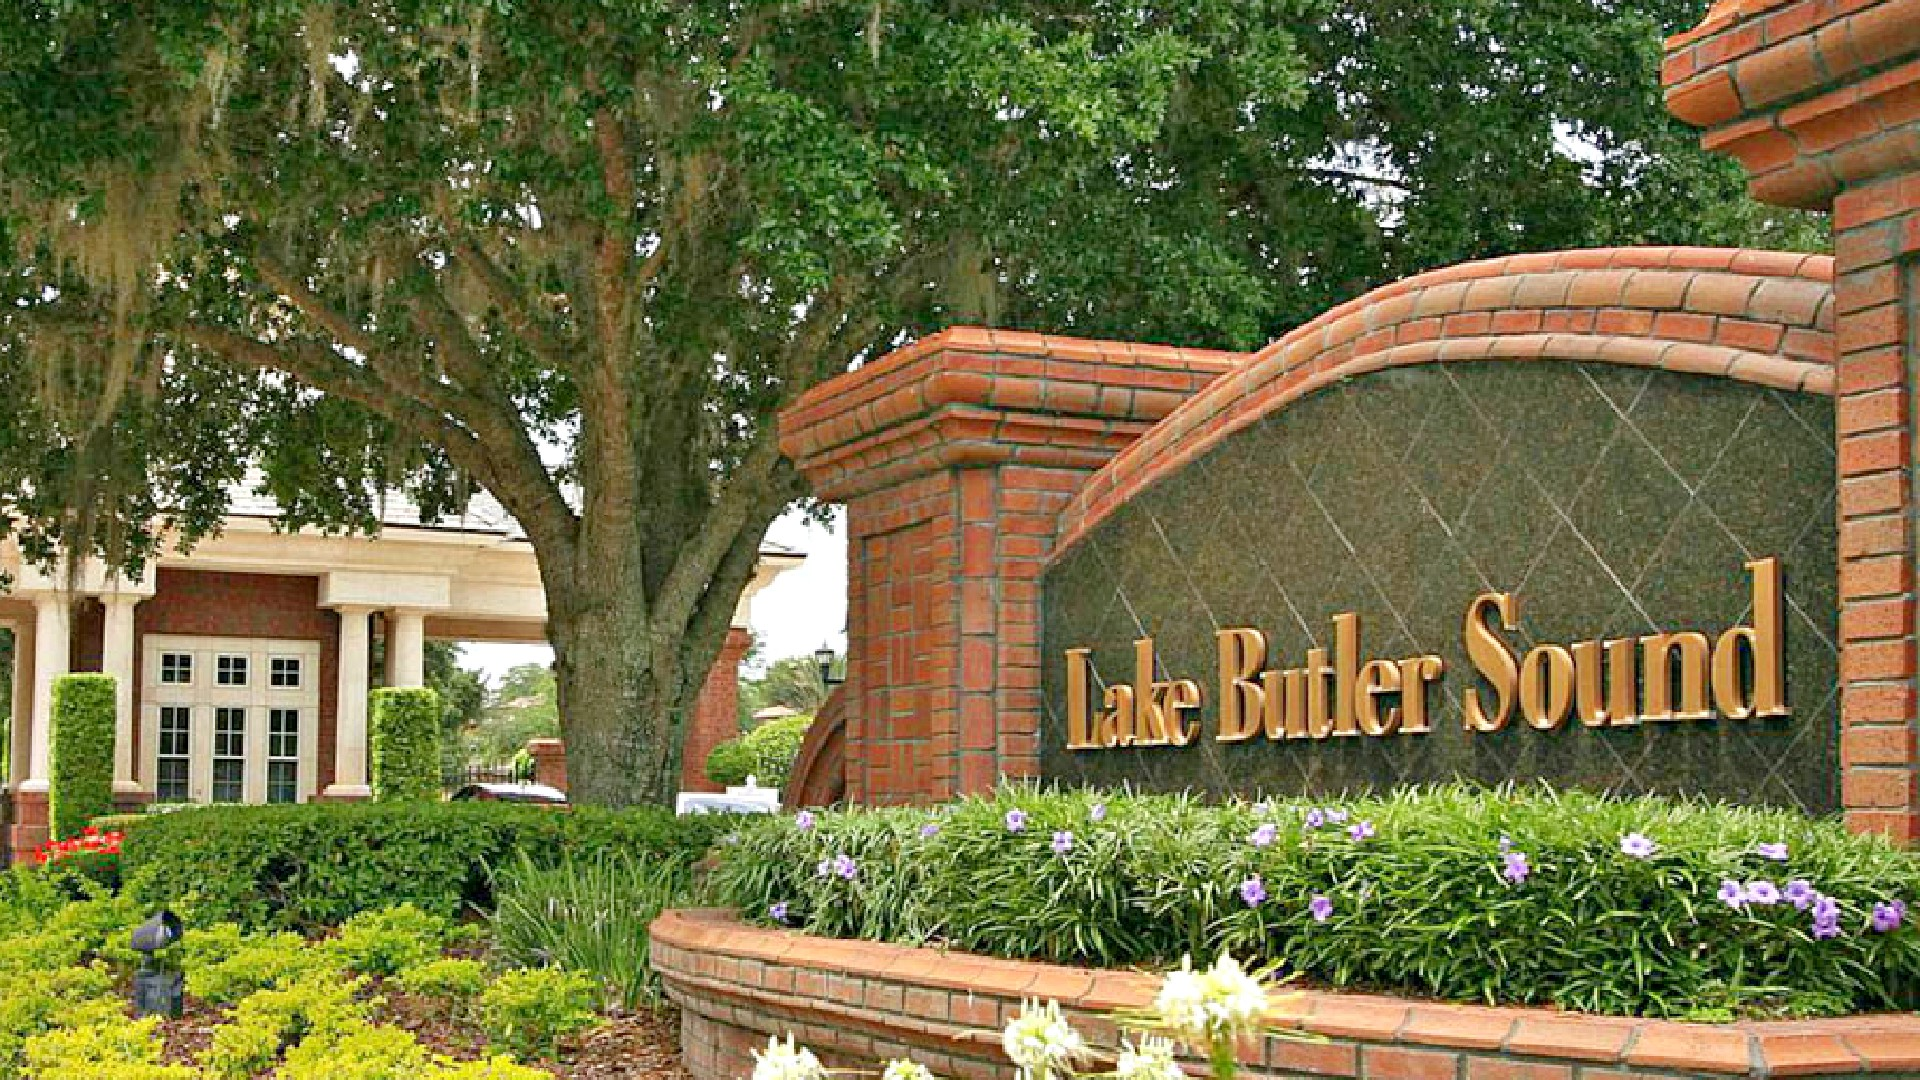 Reserve At Lake Butler Sound | Homes for Sale in Reserve At Lake ...